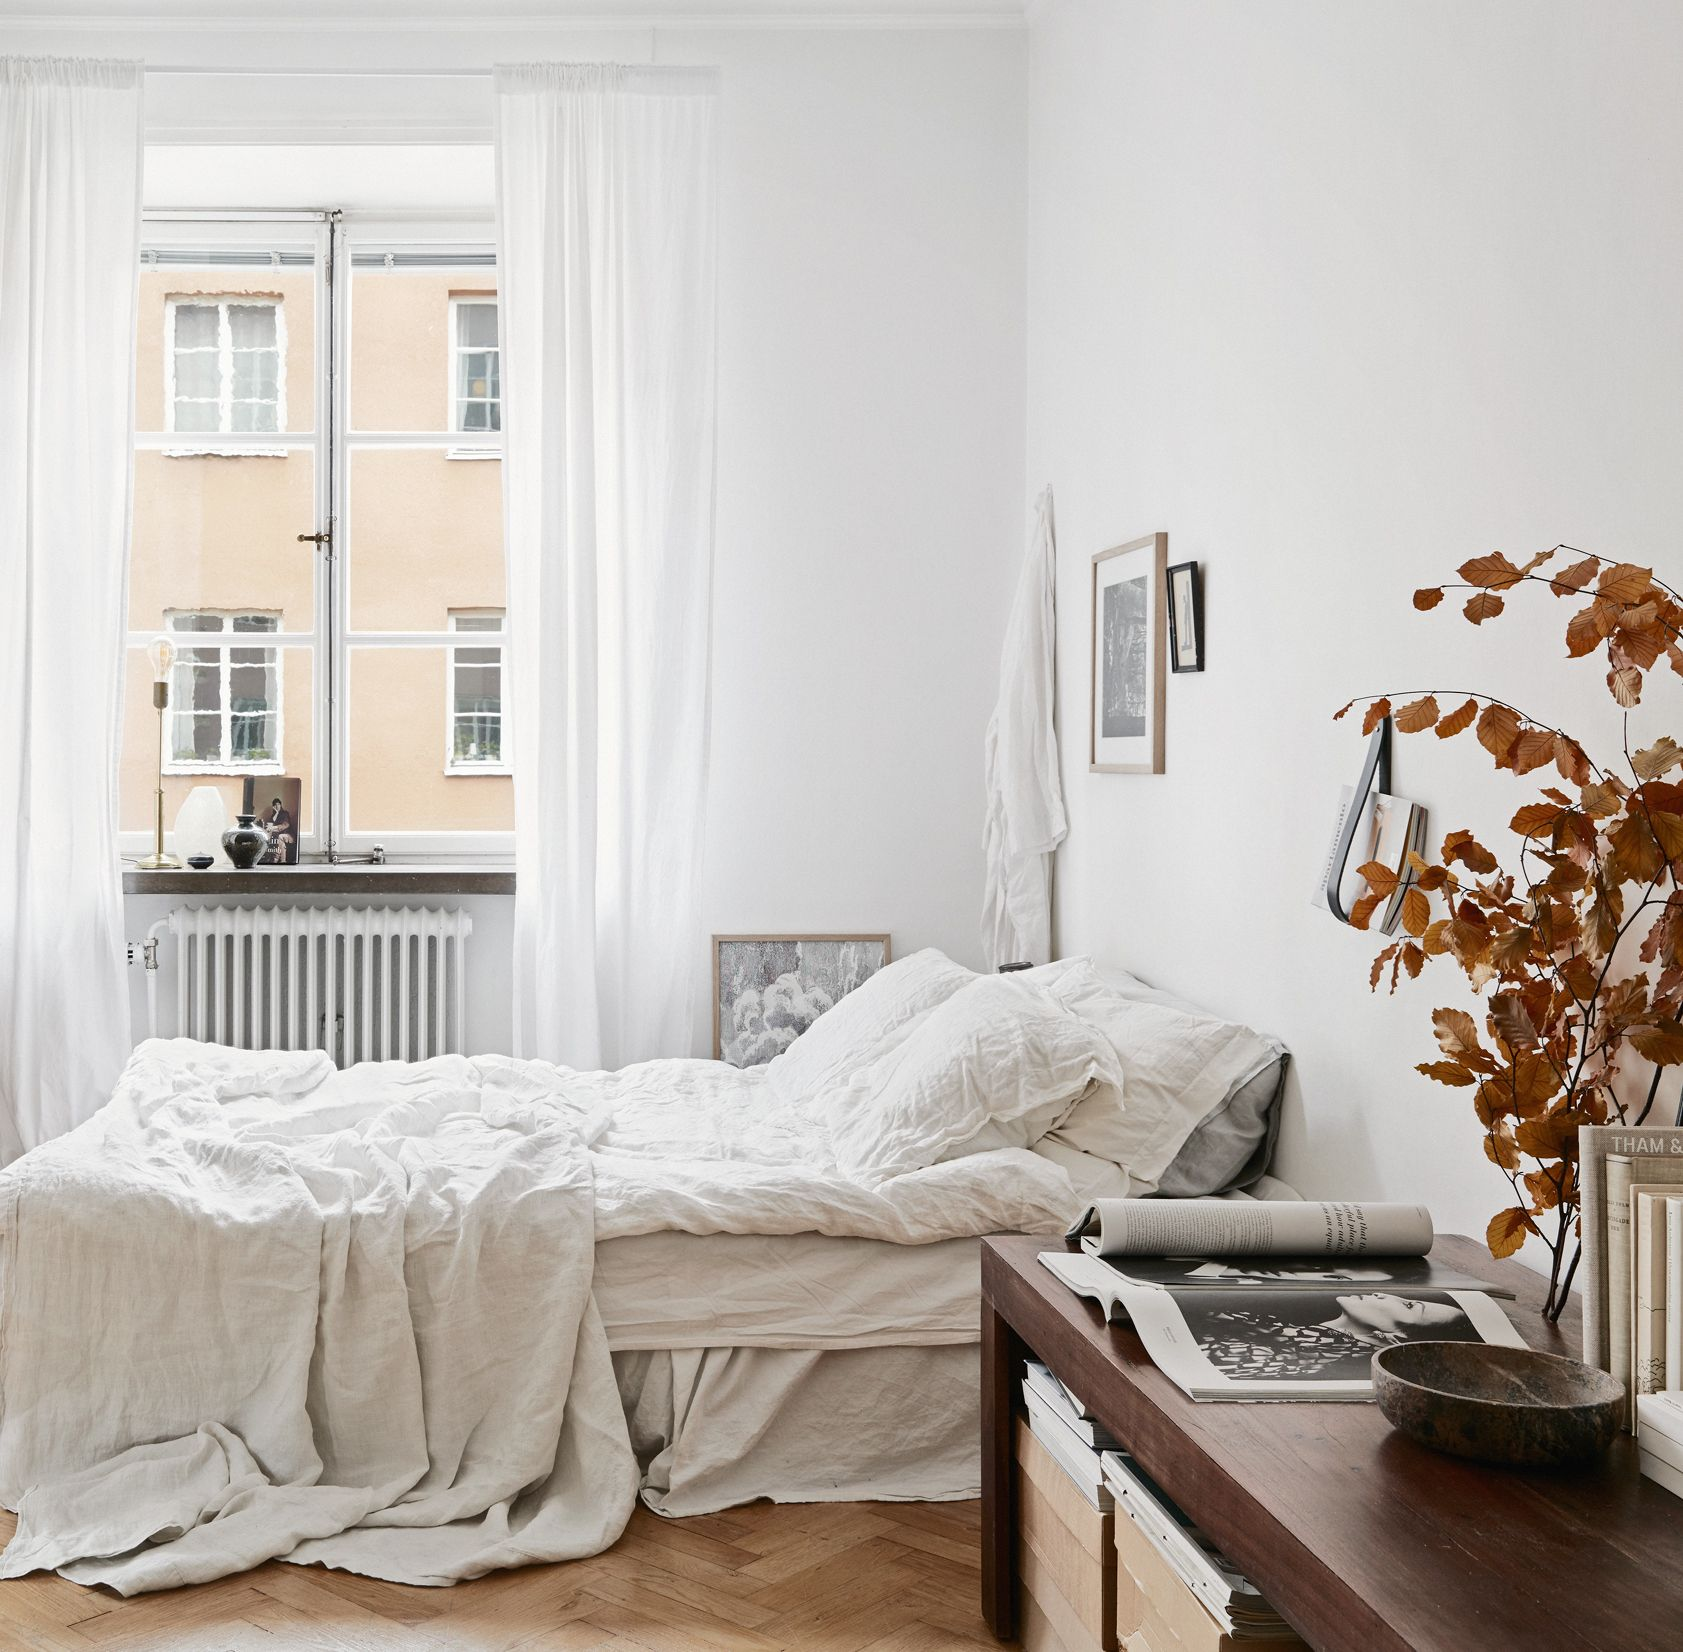 Home in the fall mood   COCO LAPINE DESIGN   Bedroom decor ...